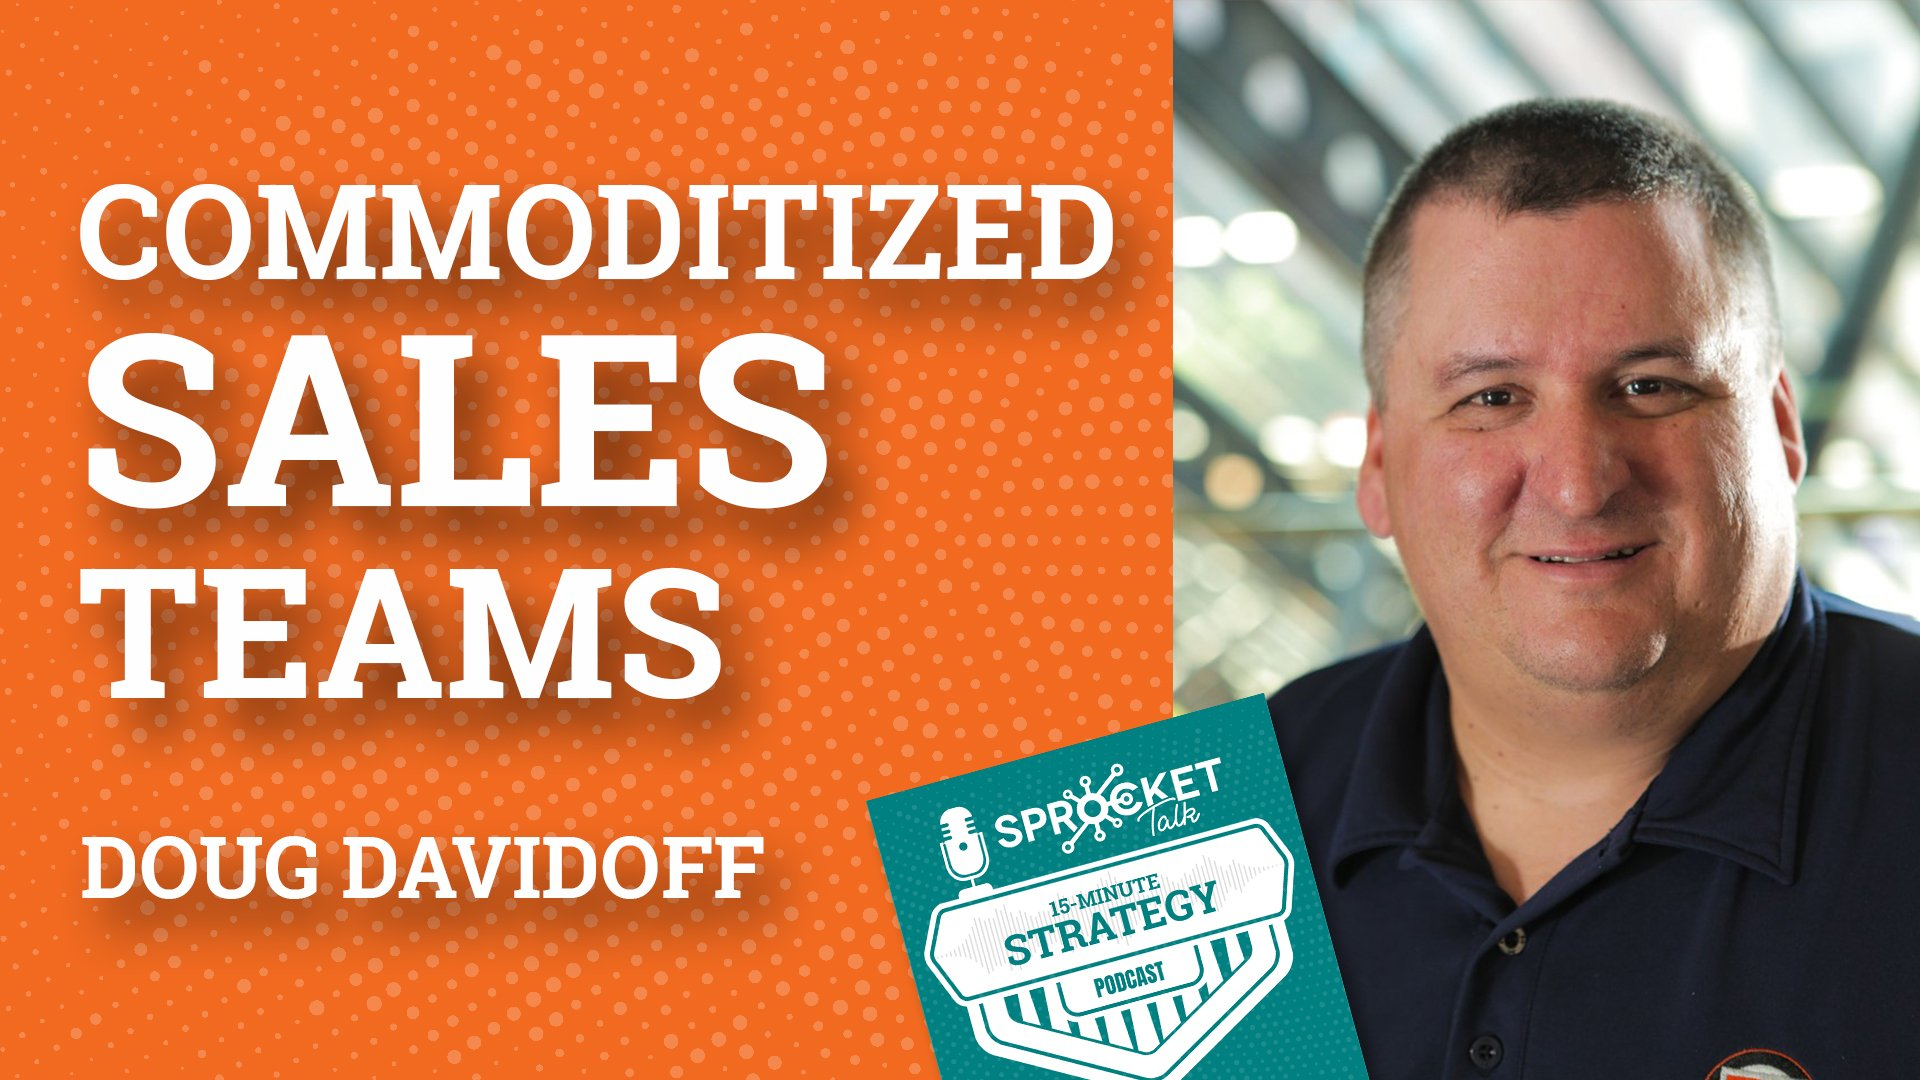 Doug Davidoff Fighting Against Commoditized Sales Teams | 15-Minute Strategy Podcast